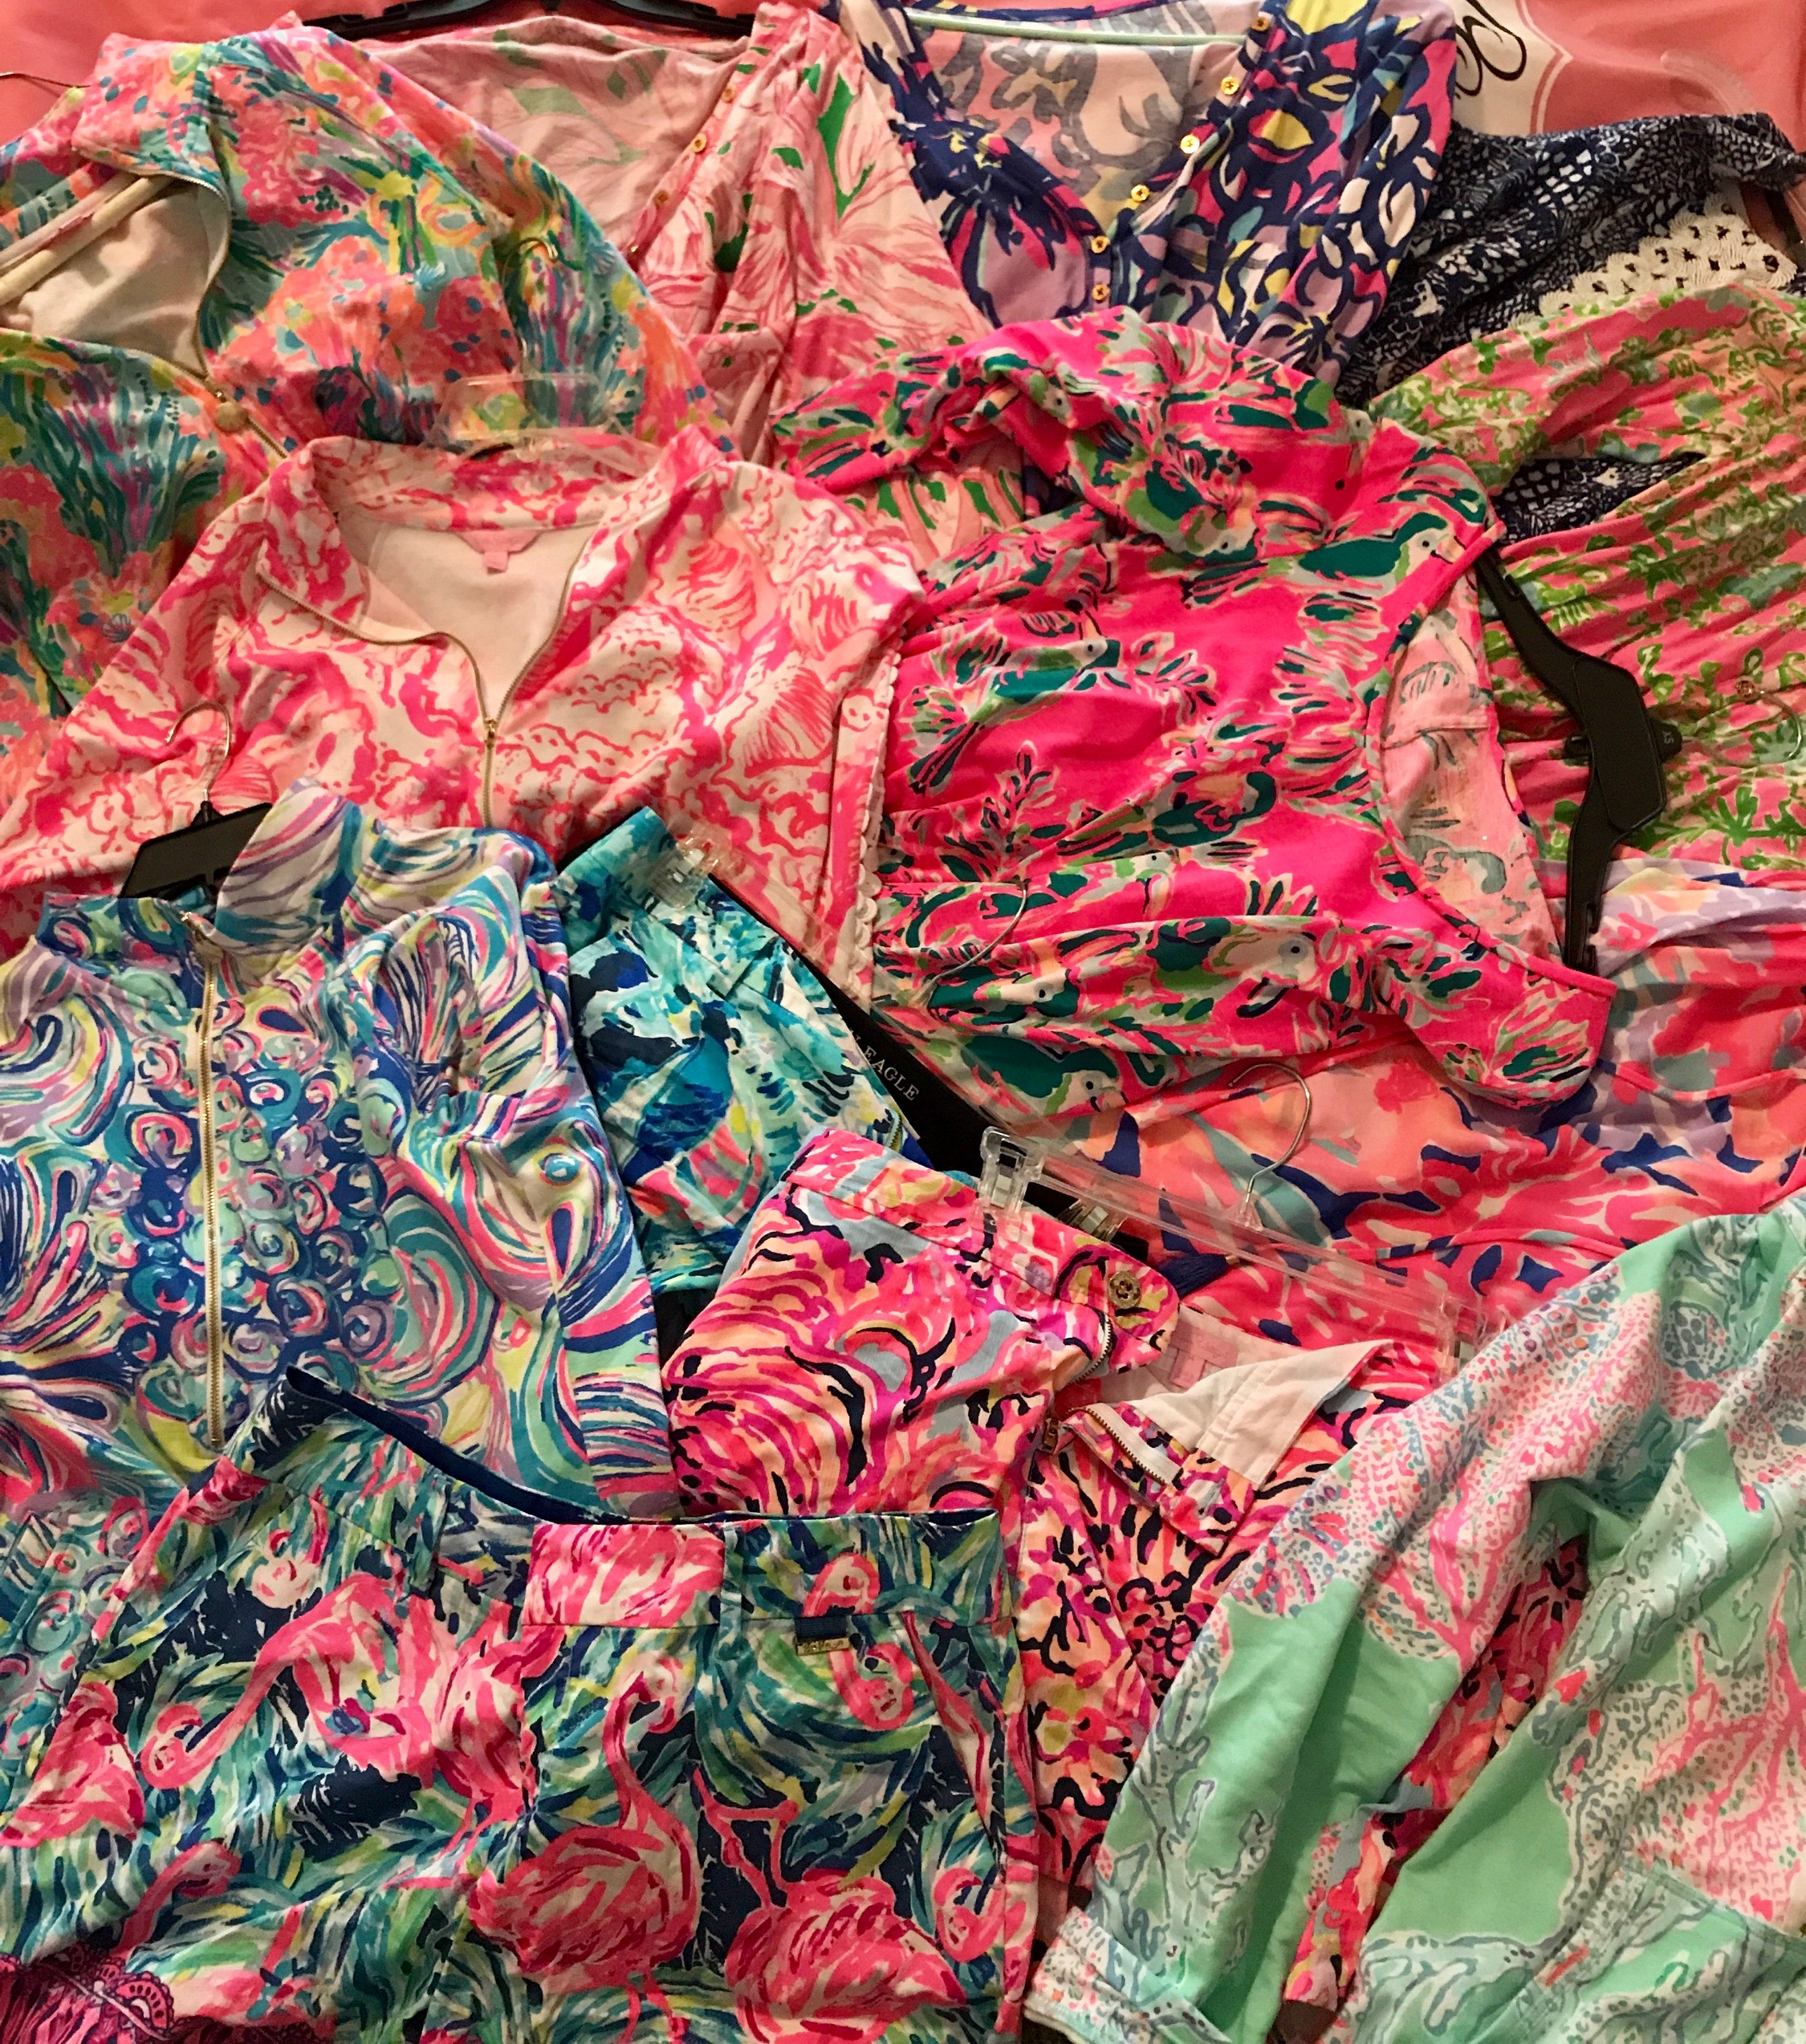 A pile of Lilly Pulitzer clothing from Tampa Blogger Ayana Lage, including a Gilty Pleasure popover, Coral Reef Beside the Point popover, flamenco beach callan shorts, minty fresh fantasy skipper popover, hey bae bae callahan shorts, fansea pants skipper popover, southern charm palmetto dress and more